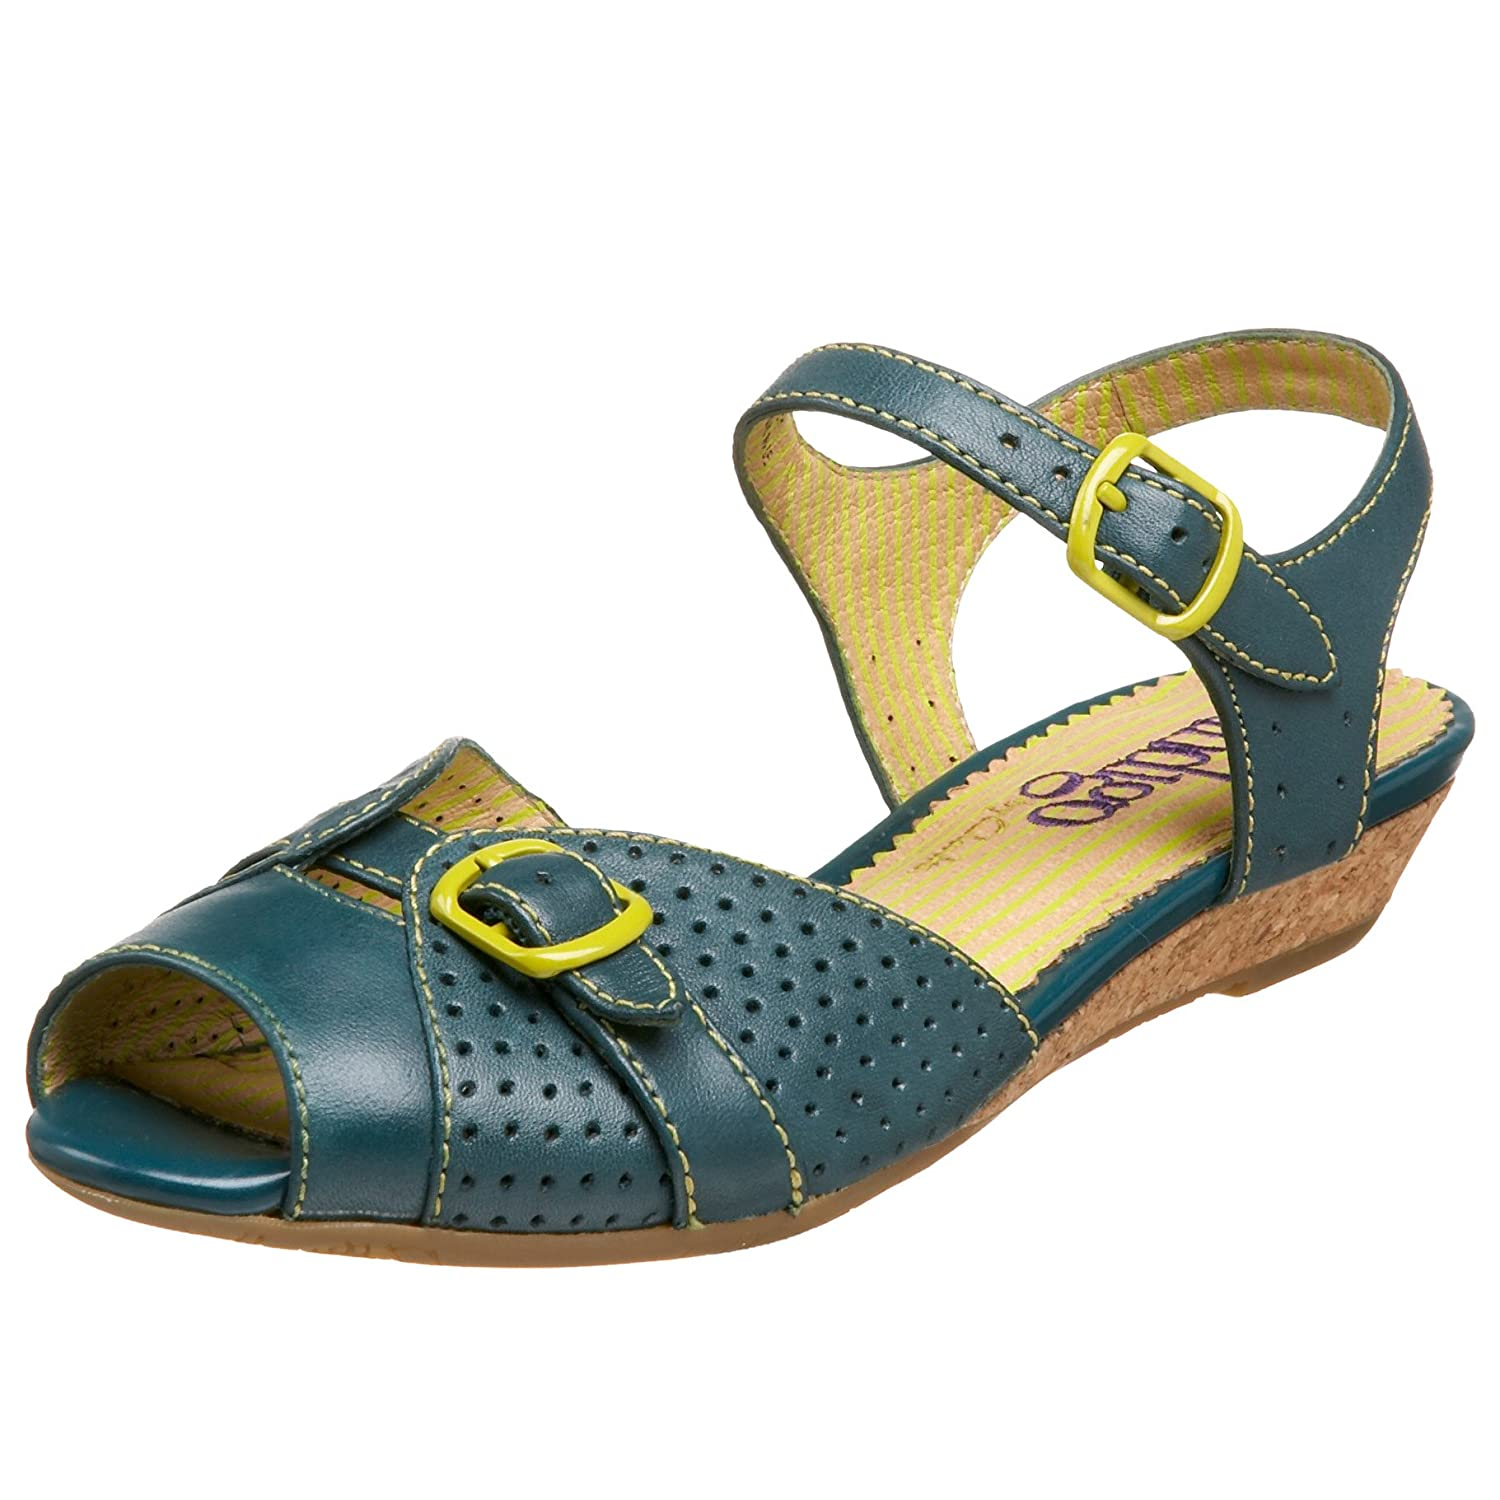 Indigo By Clarks Women's Gelato Sandal - Free Overnight Shipping & Return Shipping: Endless.com